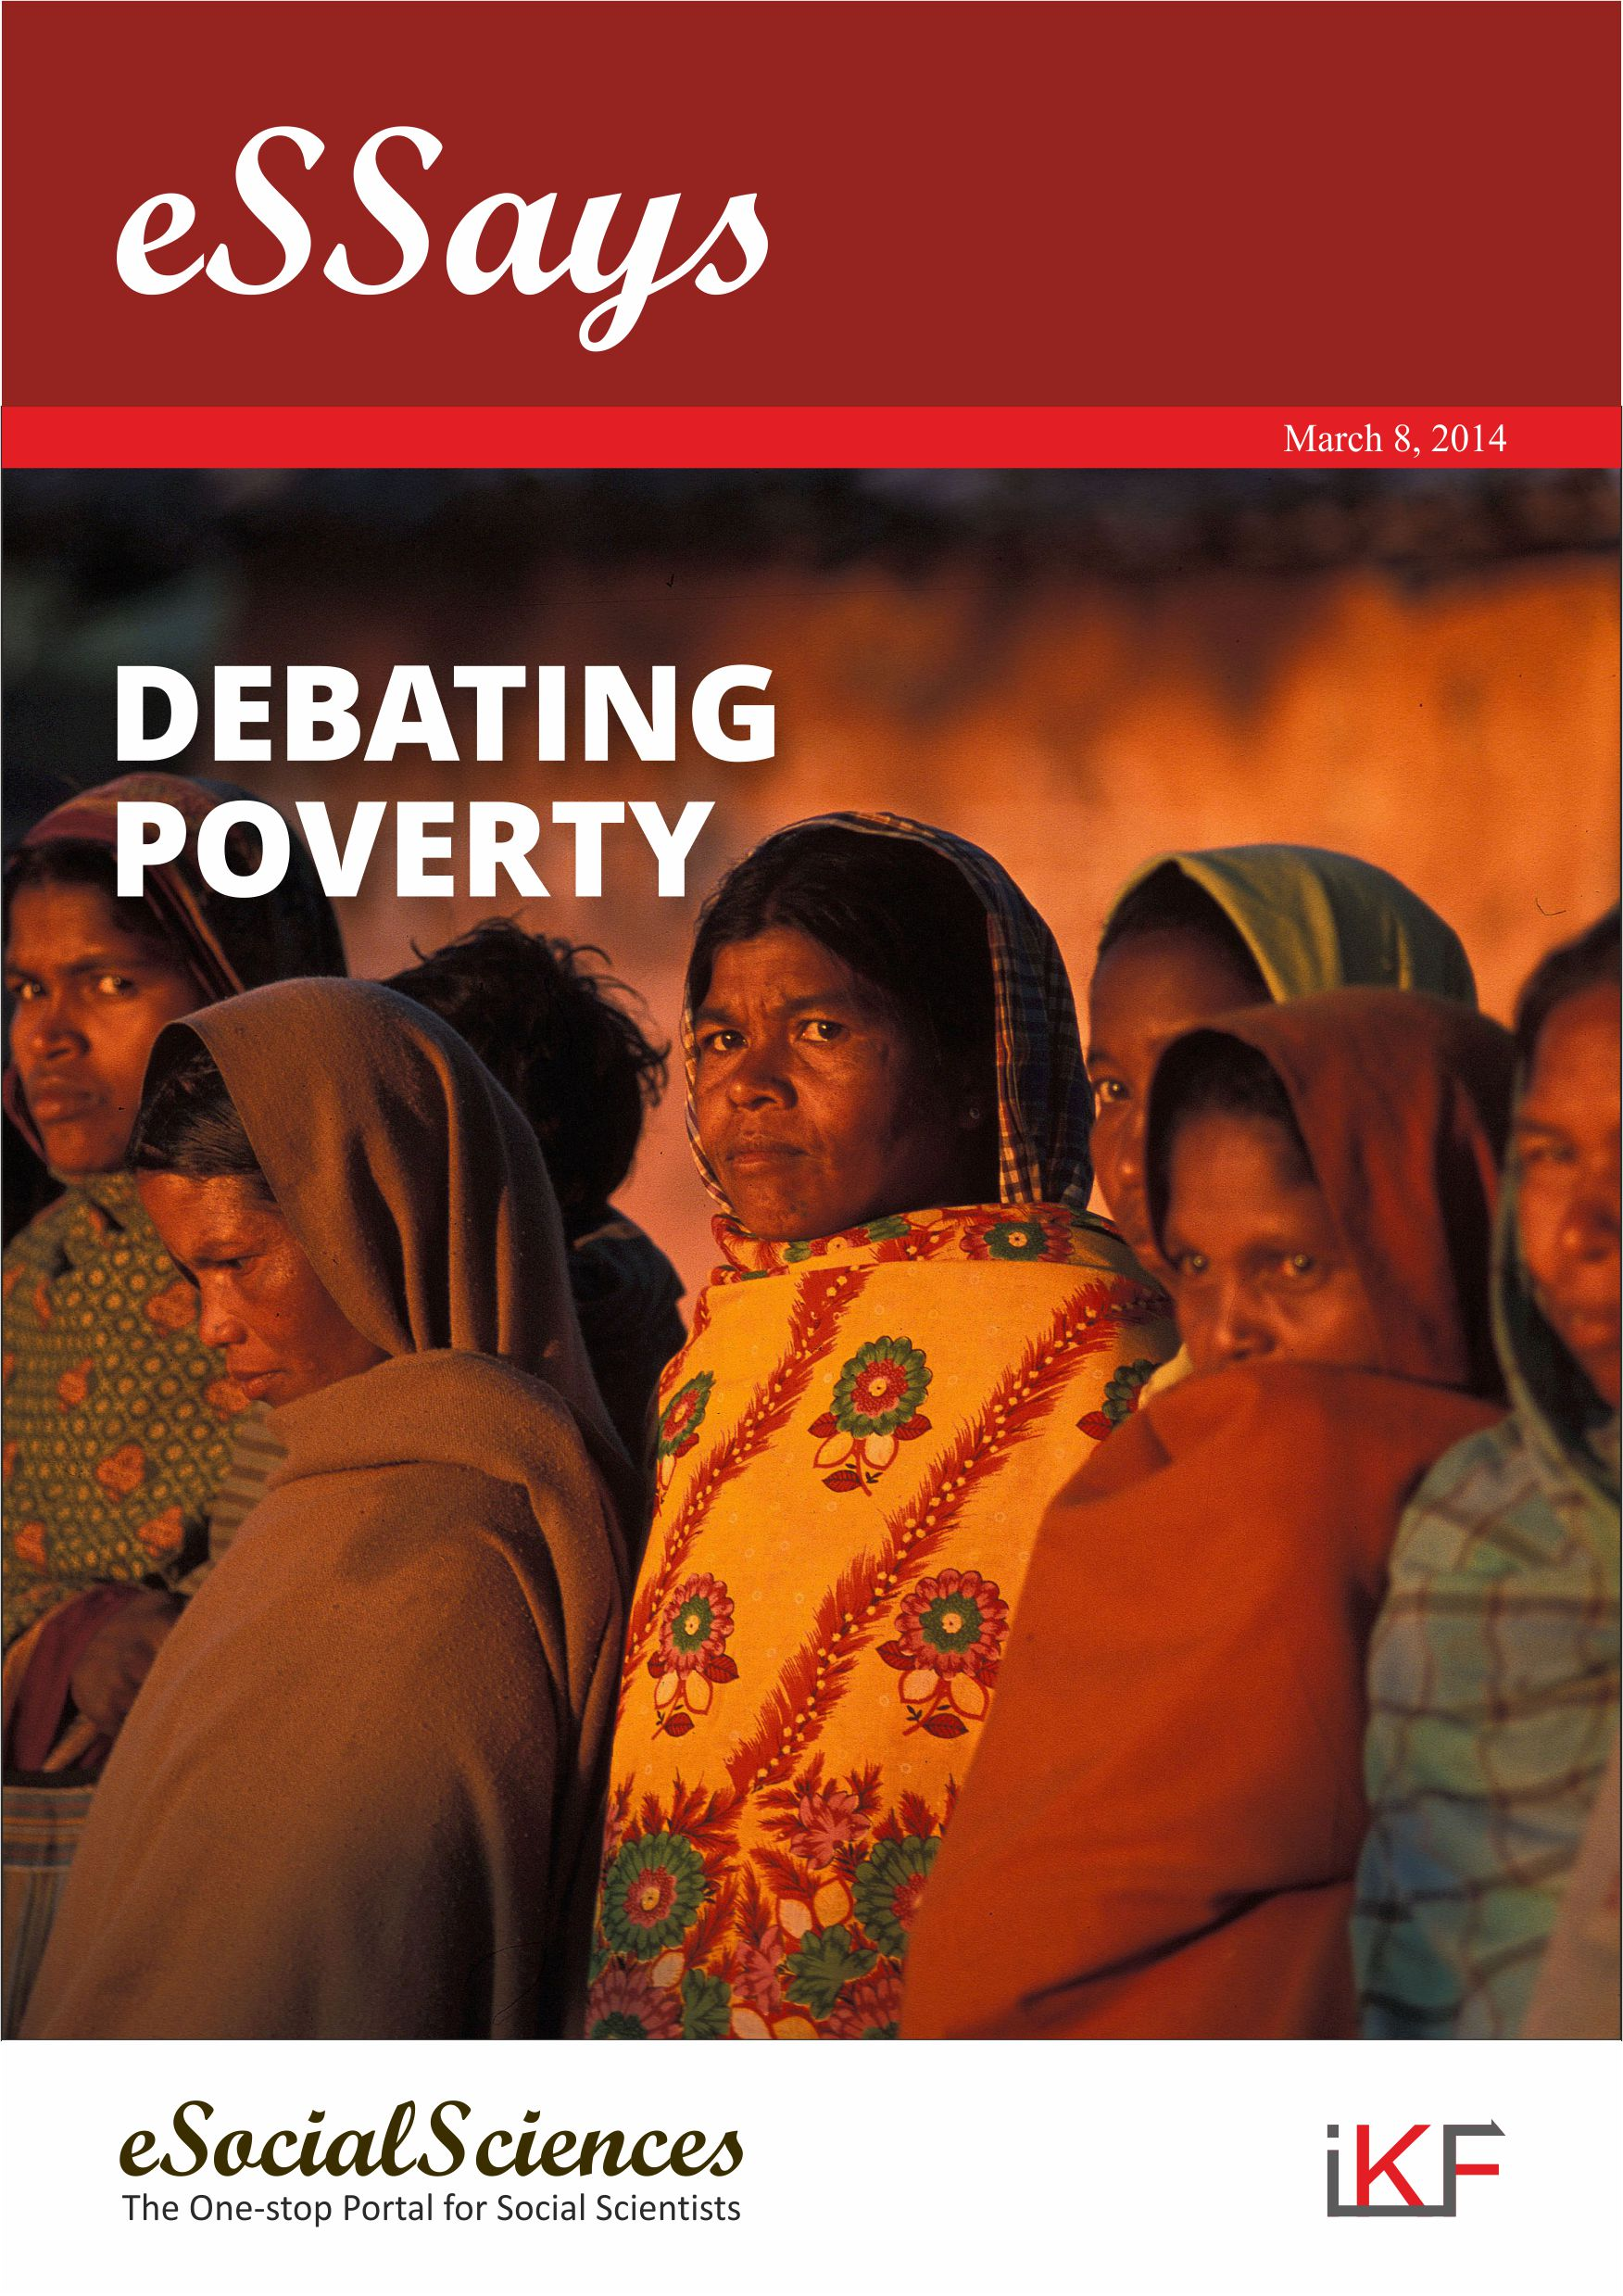 debating poverty cover high res jpg ess announces the first of a series of essays dossiers on issues of public concern this series of essays is an attempt to fill that gap and make social and